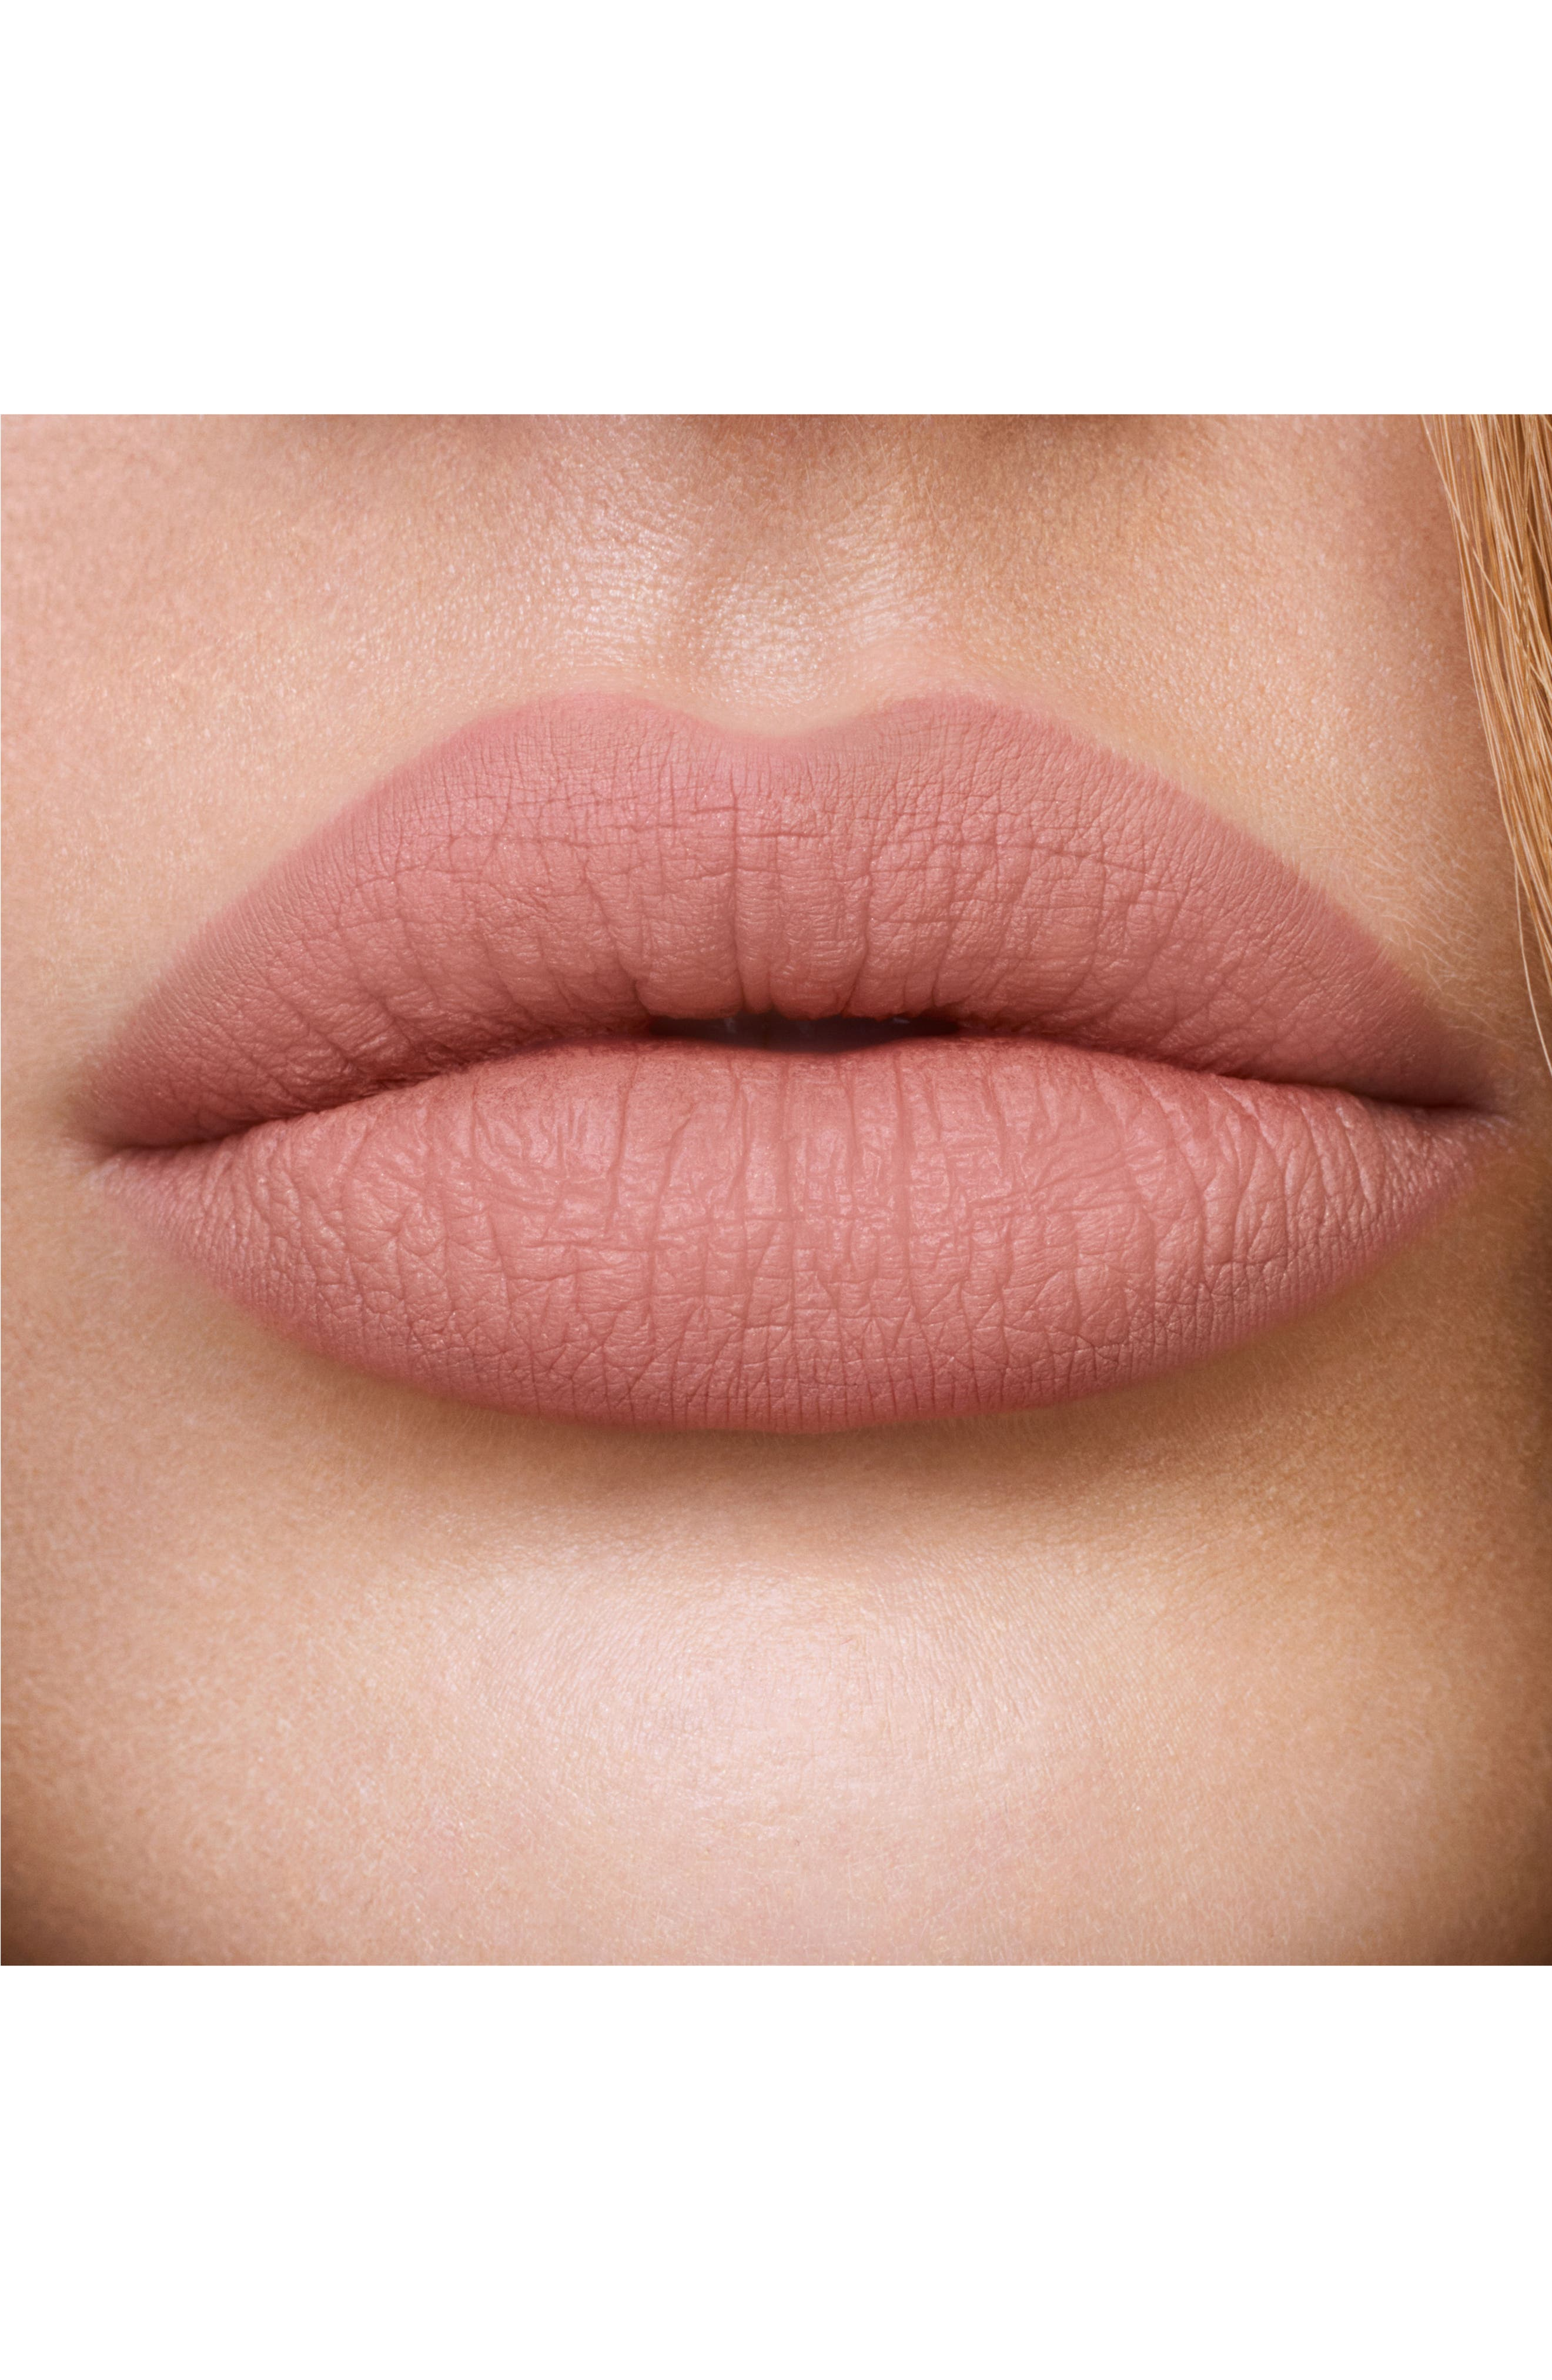 Hollywood Lips Liquid Lipstick,                             Alternate thumbnail 4, color,                             CHARLOTTE DARLING/ BEIGE NUDE